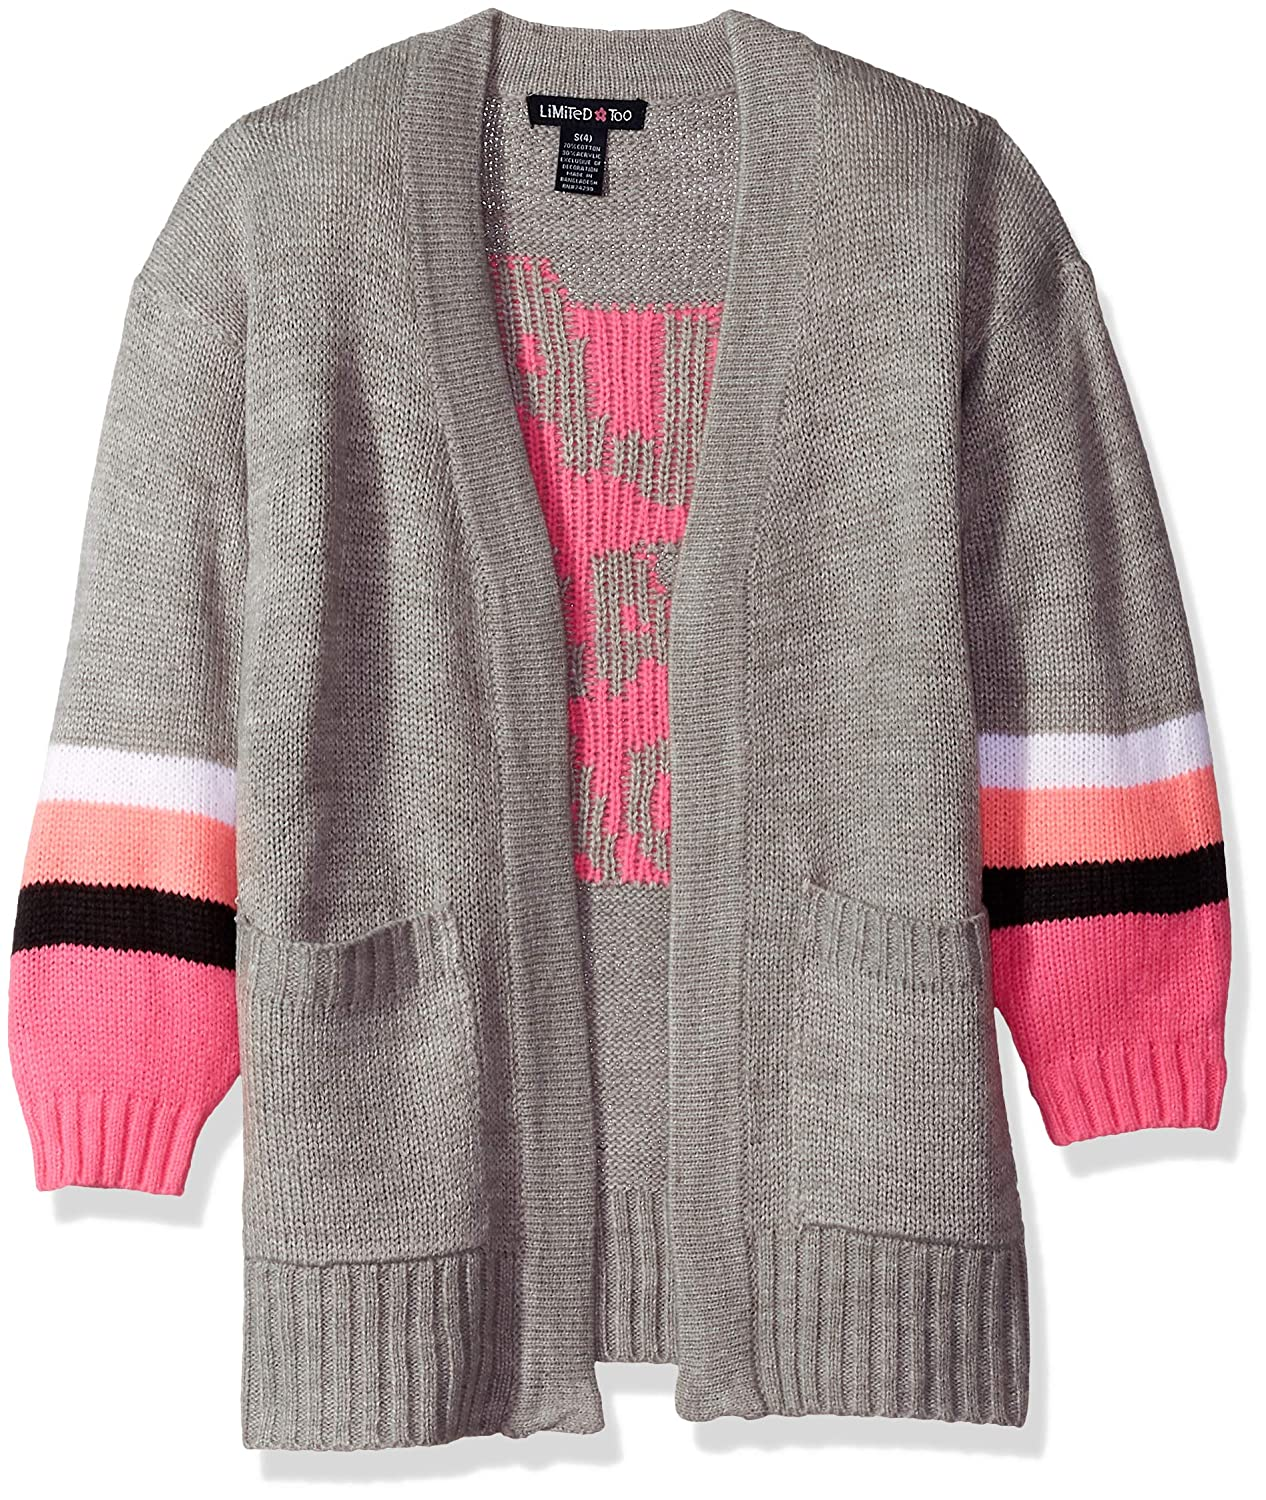 Limited Too Girls' Cardigan with Chenille Letters